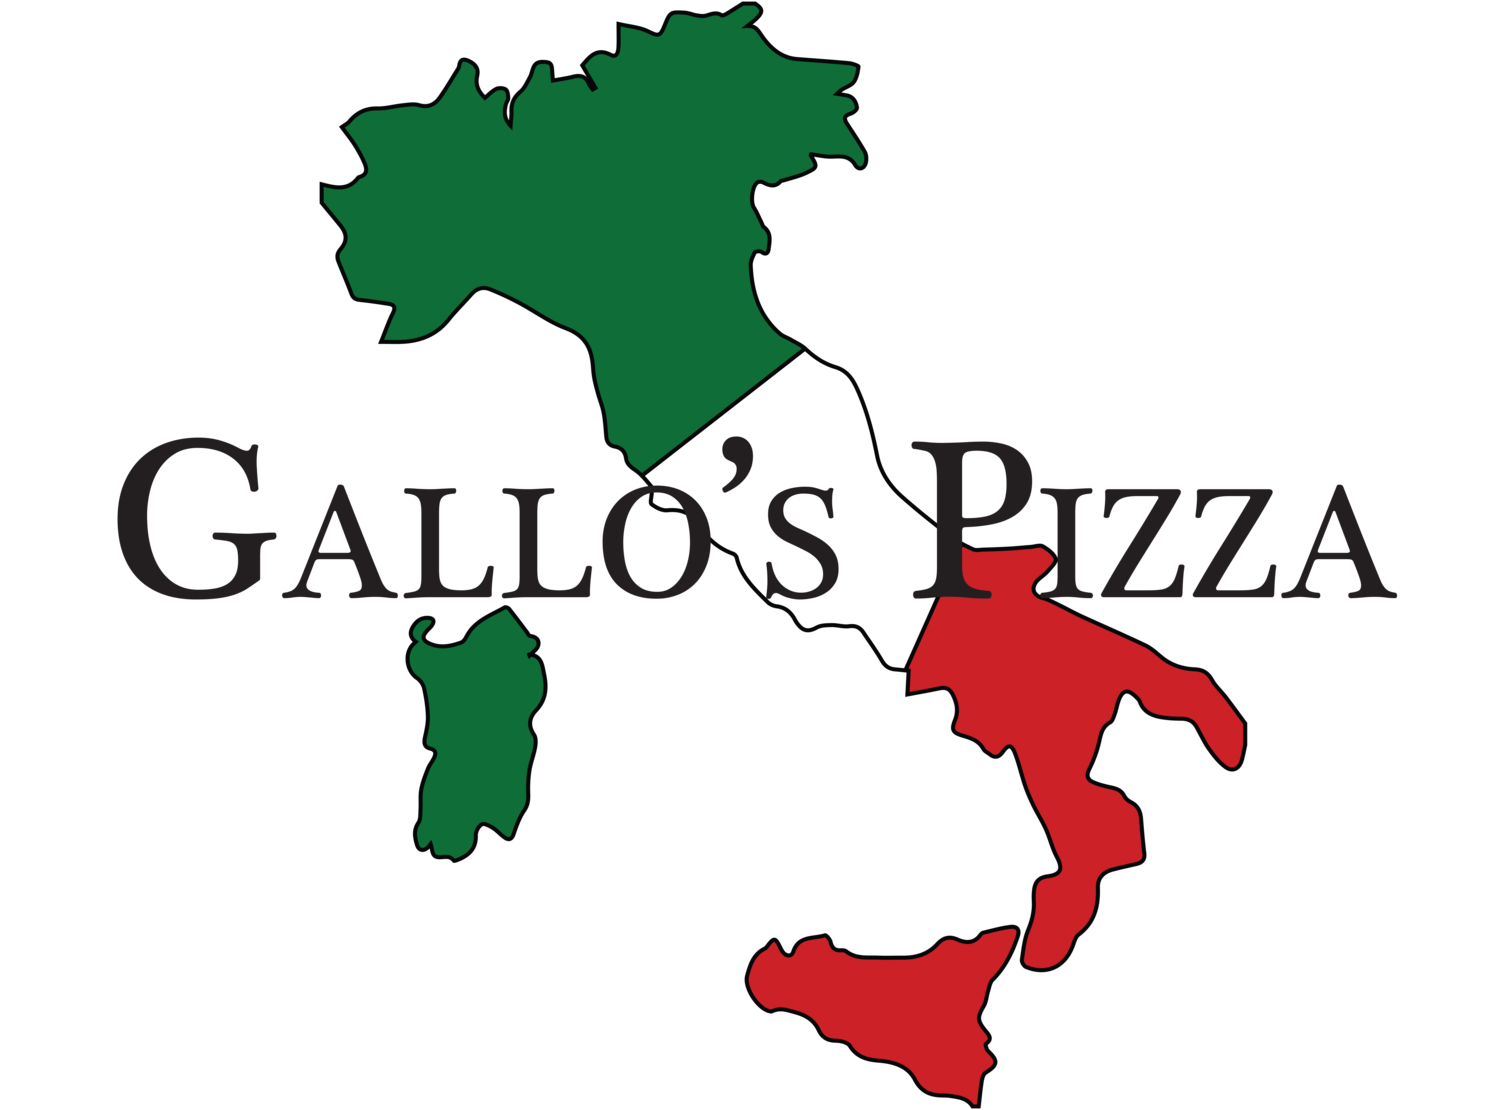 Gallo's Pizza & Subs